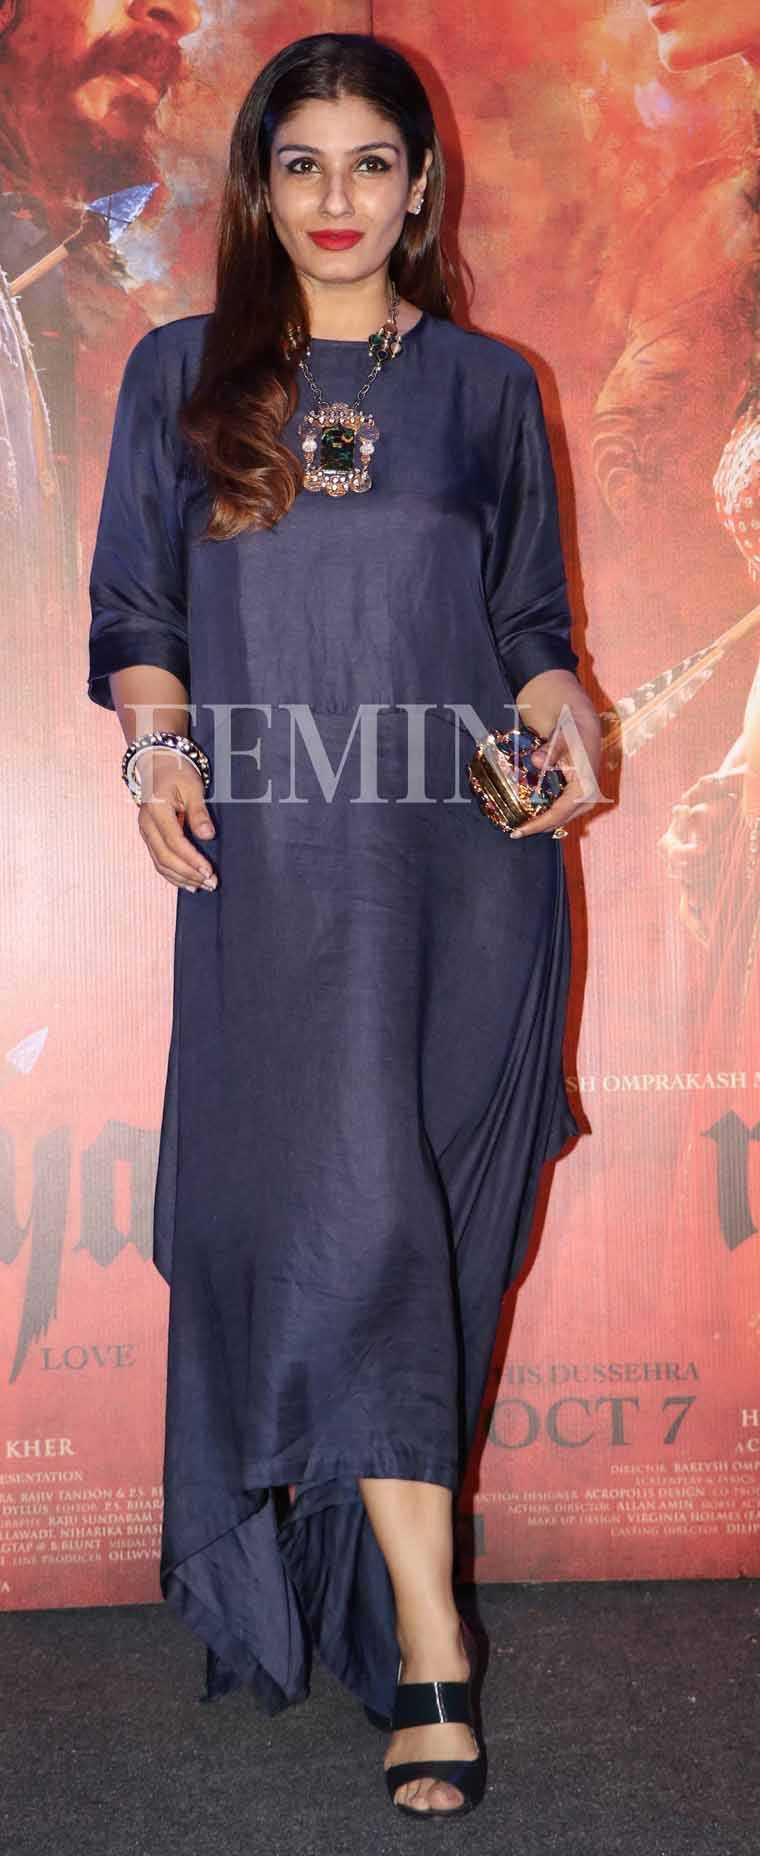 At a recent event, Raveena Tandon stepped out in a chic Payal Khandwala dress in the season's most wanted colour—Indigo, inspiring us to update our wardrobes immediately with pieces in this versatile shade. Pair these dresses with the season's hotte